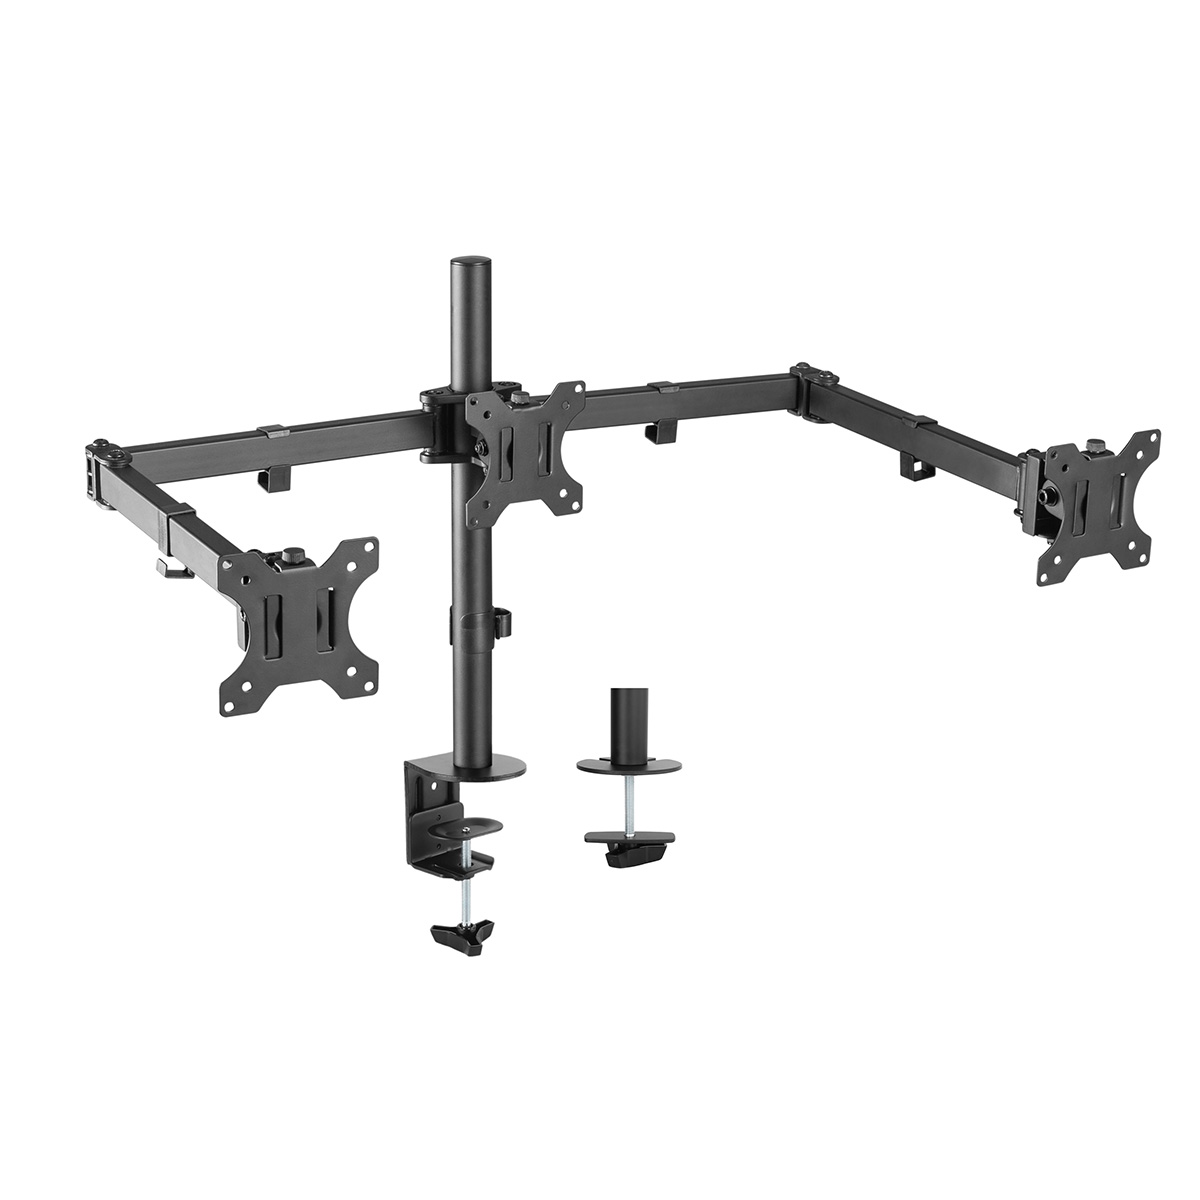 DM-EX30 Triple Arm Deskop Monitor Mount